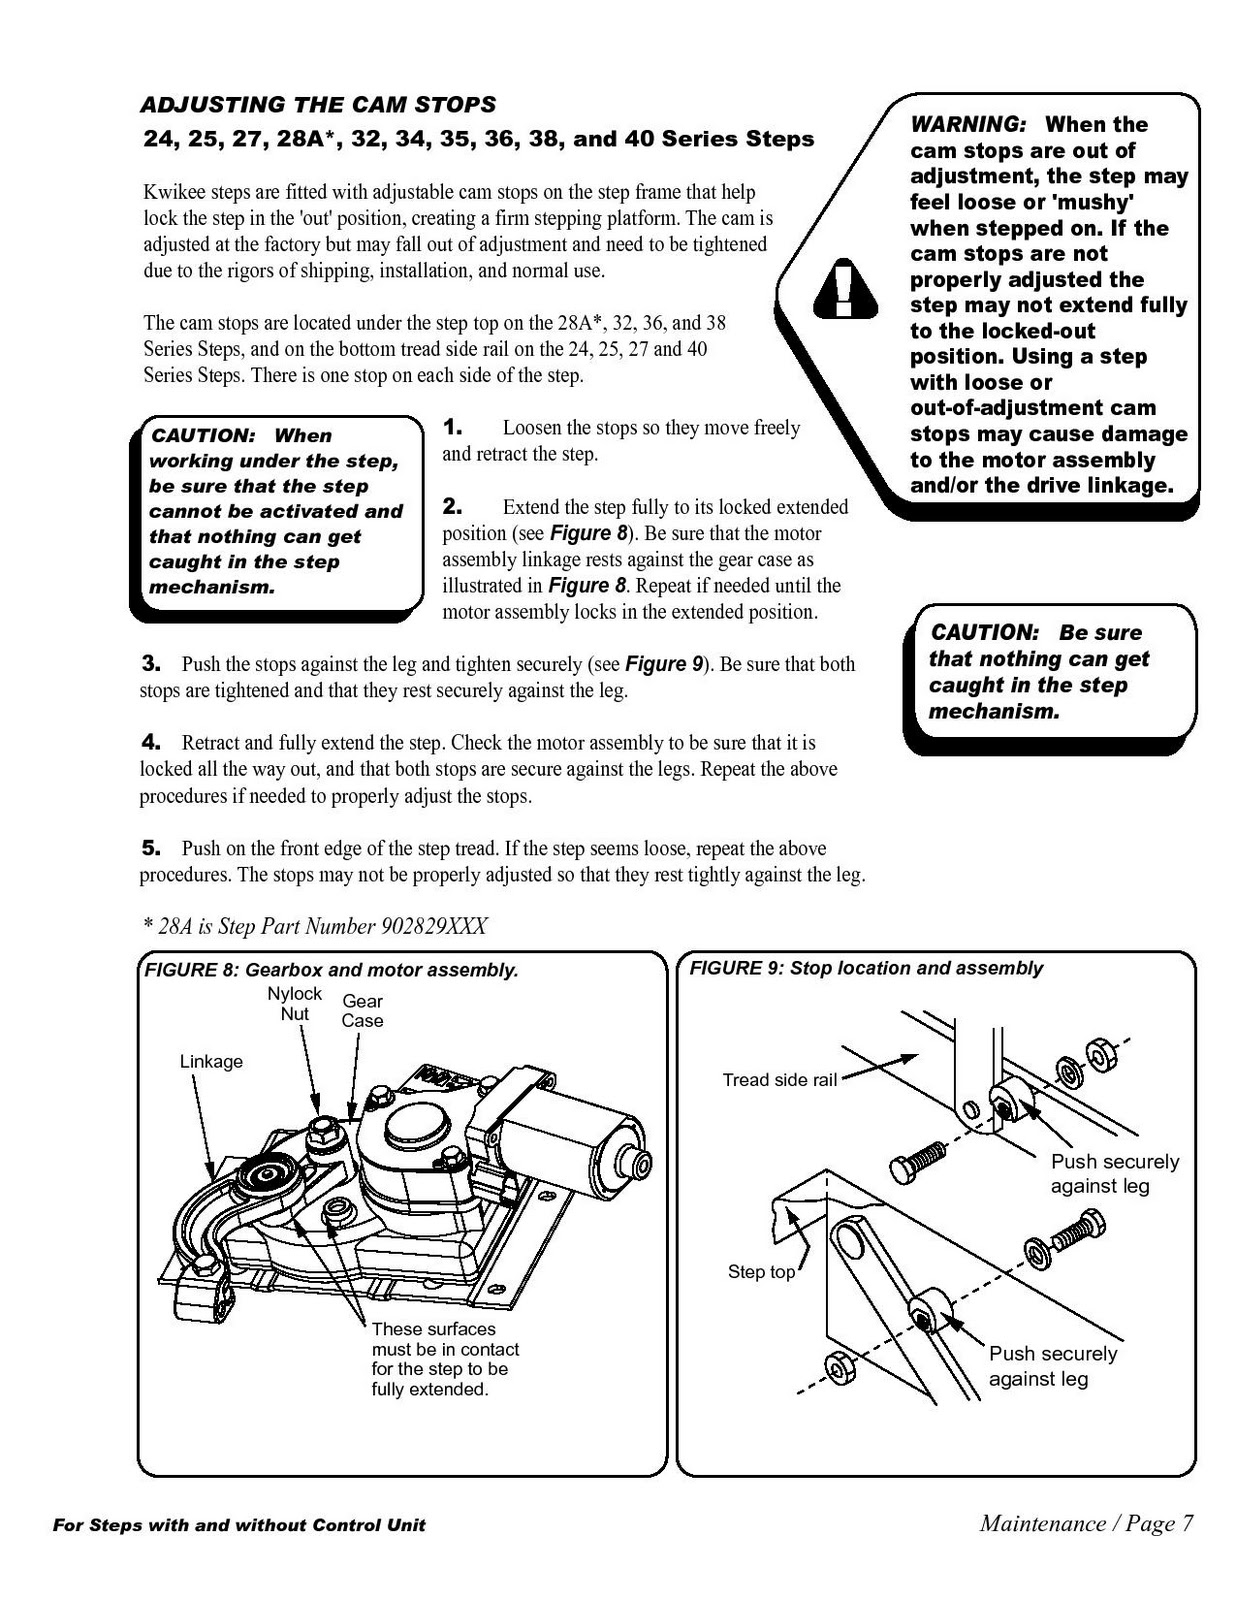 1983 Fleetwood Pace Arrow Owners Manuals: Kwikee Electric Step Manual